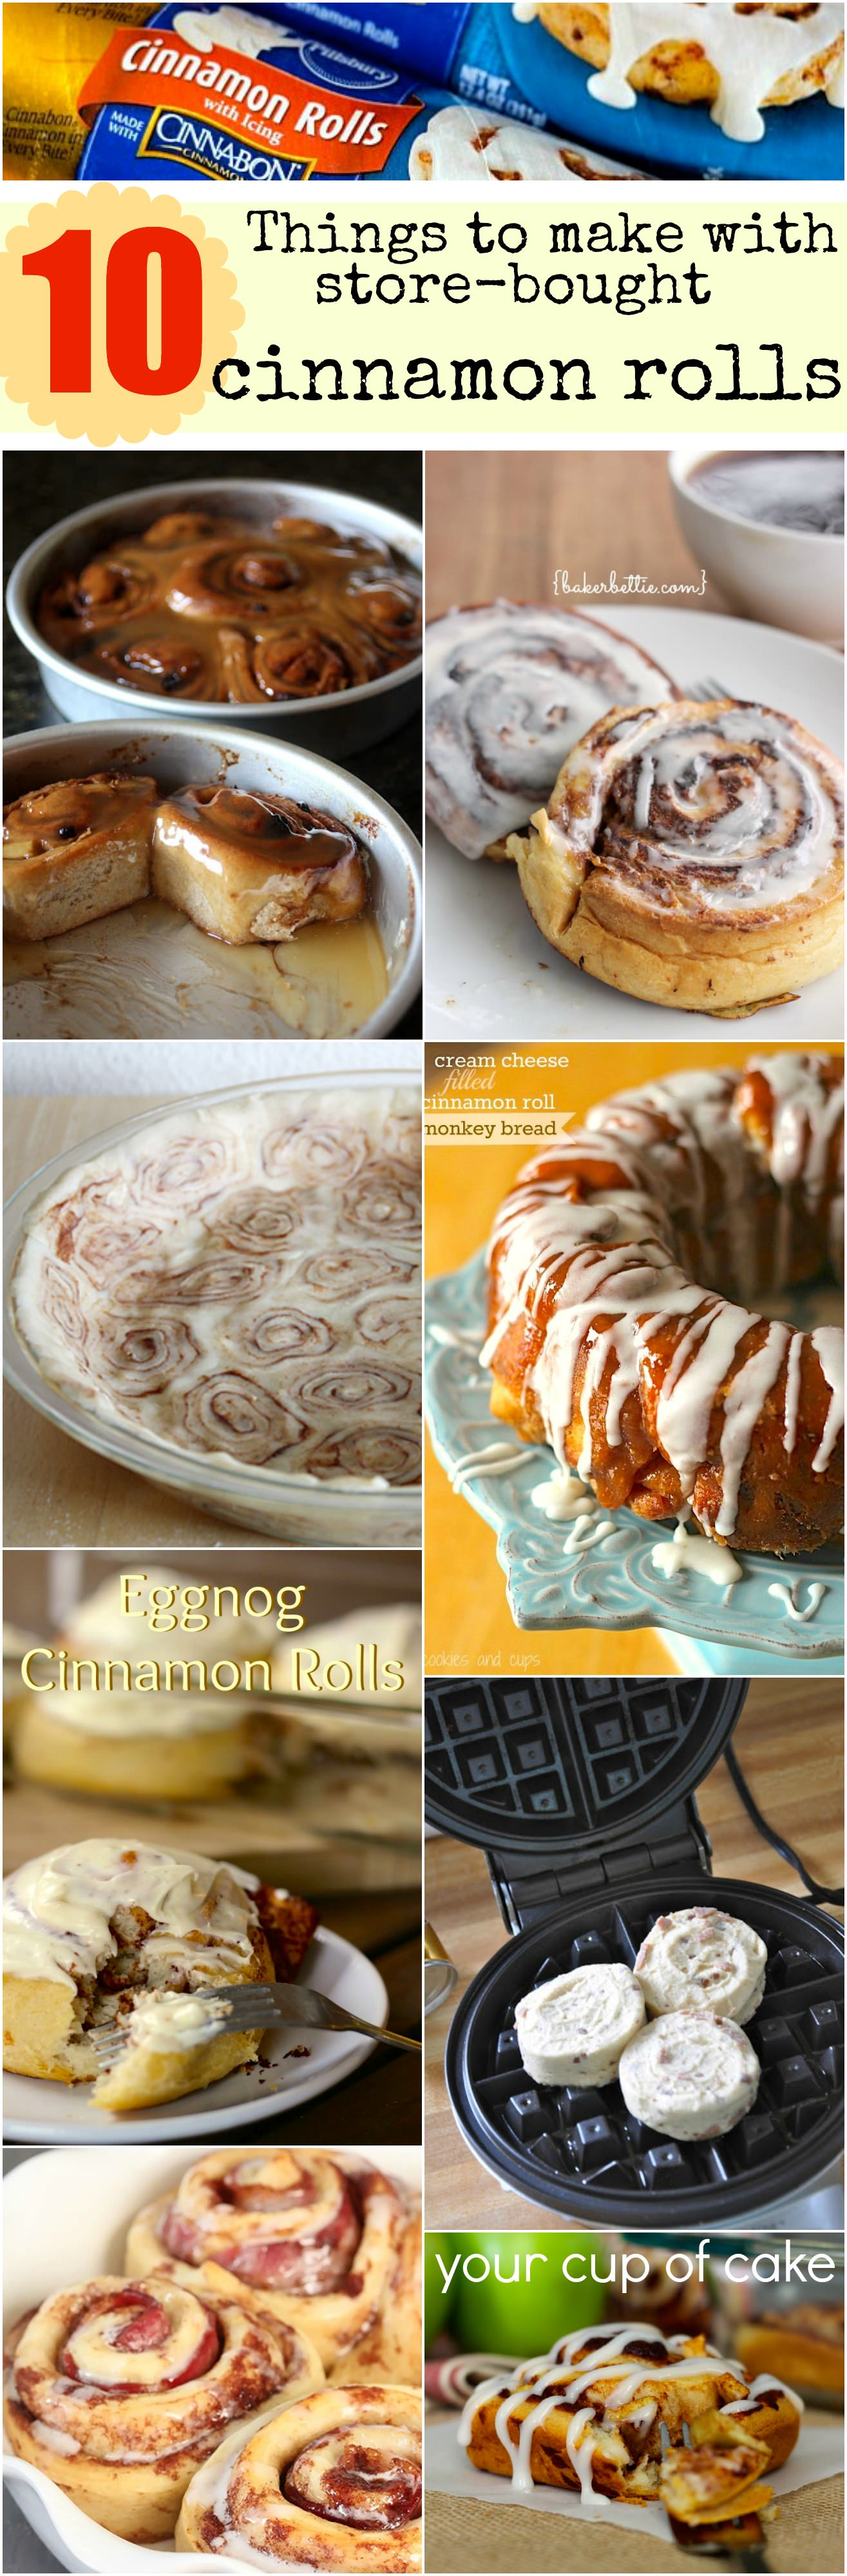 10 Things To Make With Store Bought Cinnamon Rolls